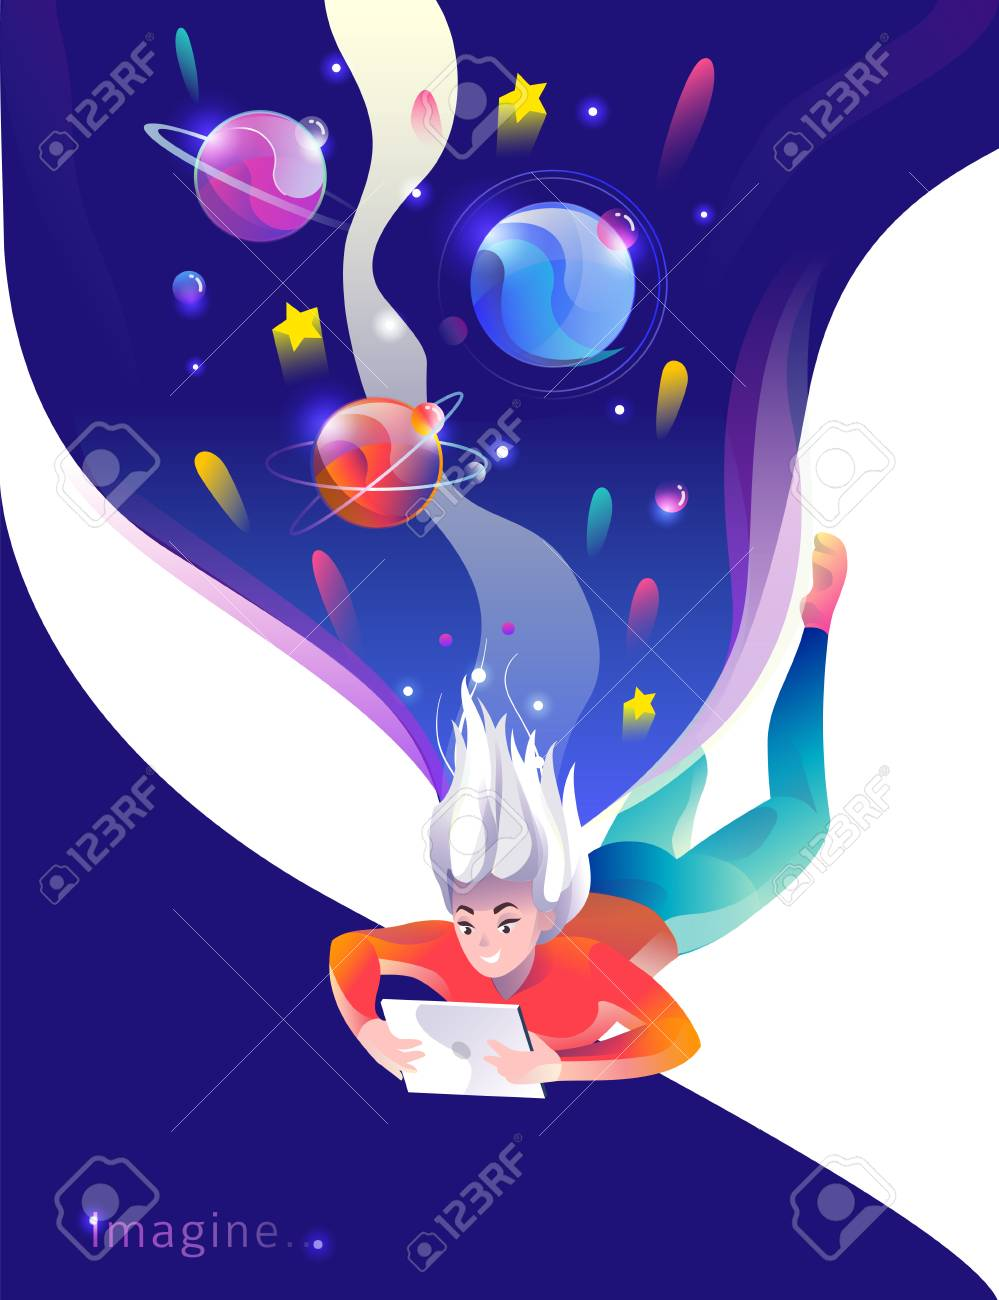 Concept in flat style with woman falling down with tablet. Space and planets. Education, game, reading, inspiration, imagination, fantasy. Vector illustration. - 122413457